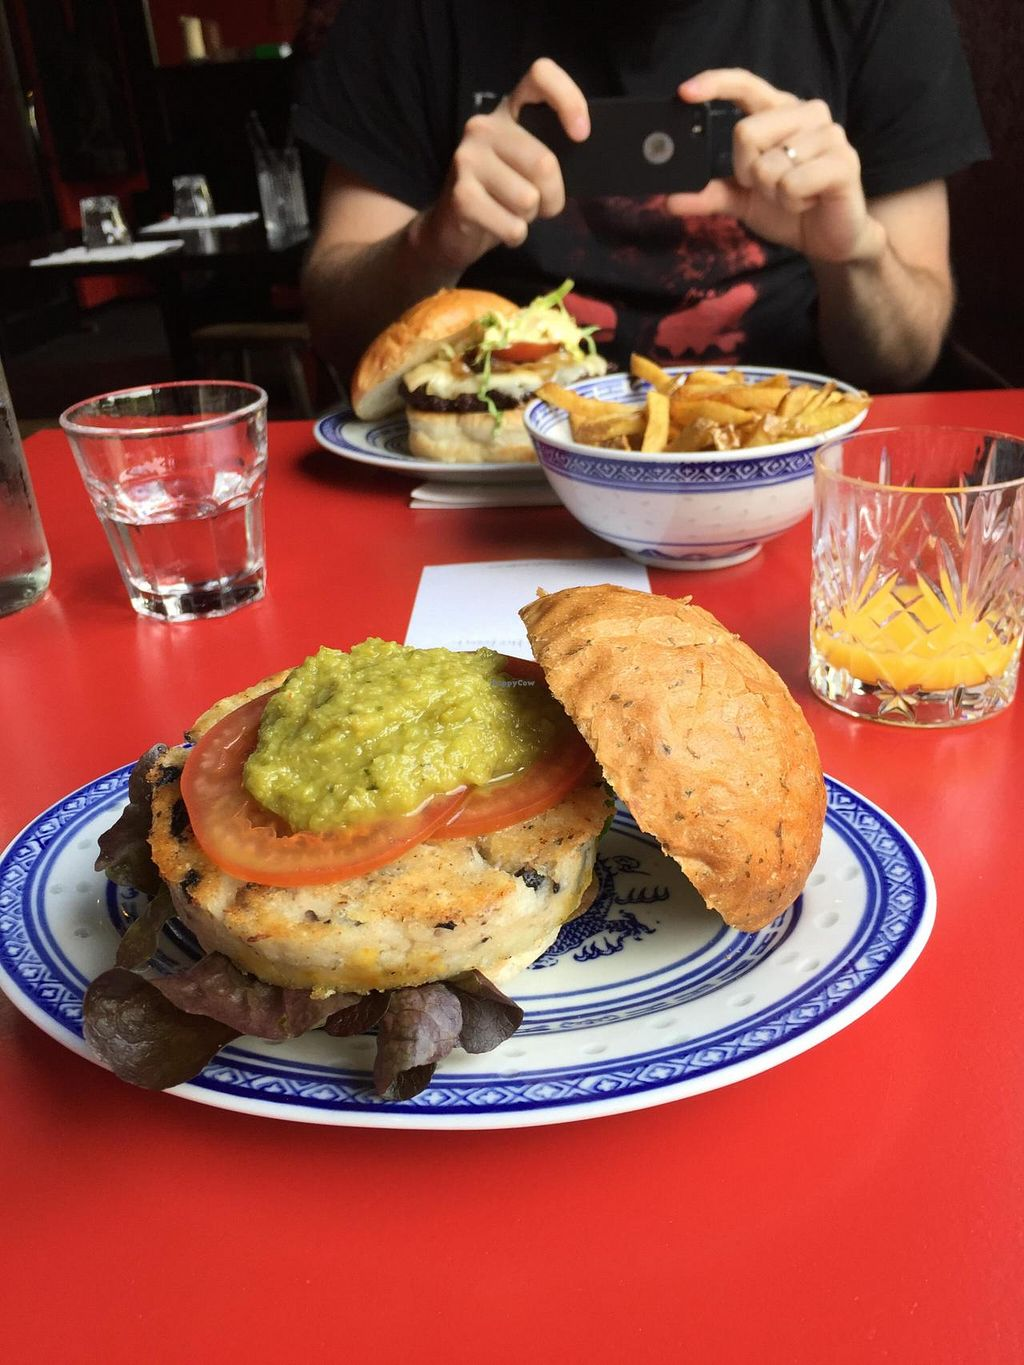 """Photo of Kung Fu Burger  by <a href=""""/members/profile/Paolla"""">Paolla</a> <br/>Huge vegan burger <br/> July 3, 2015  - <a href='/contact/abuse/image/38037/107997'>Report</a>"""